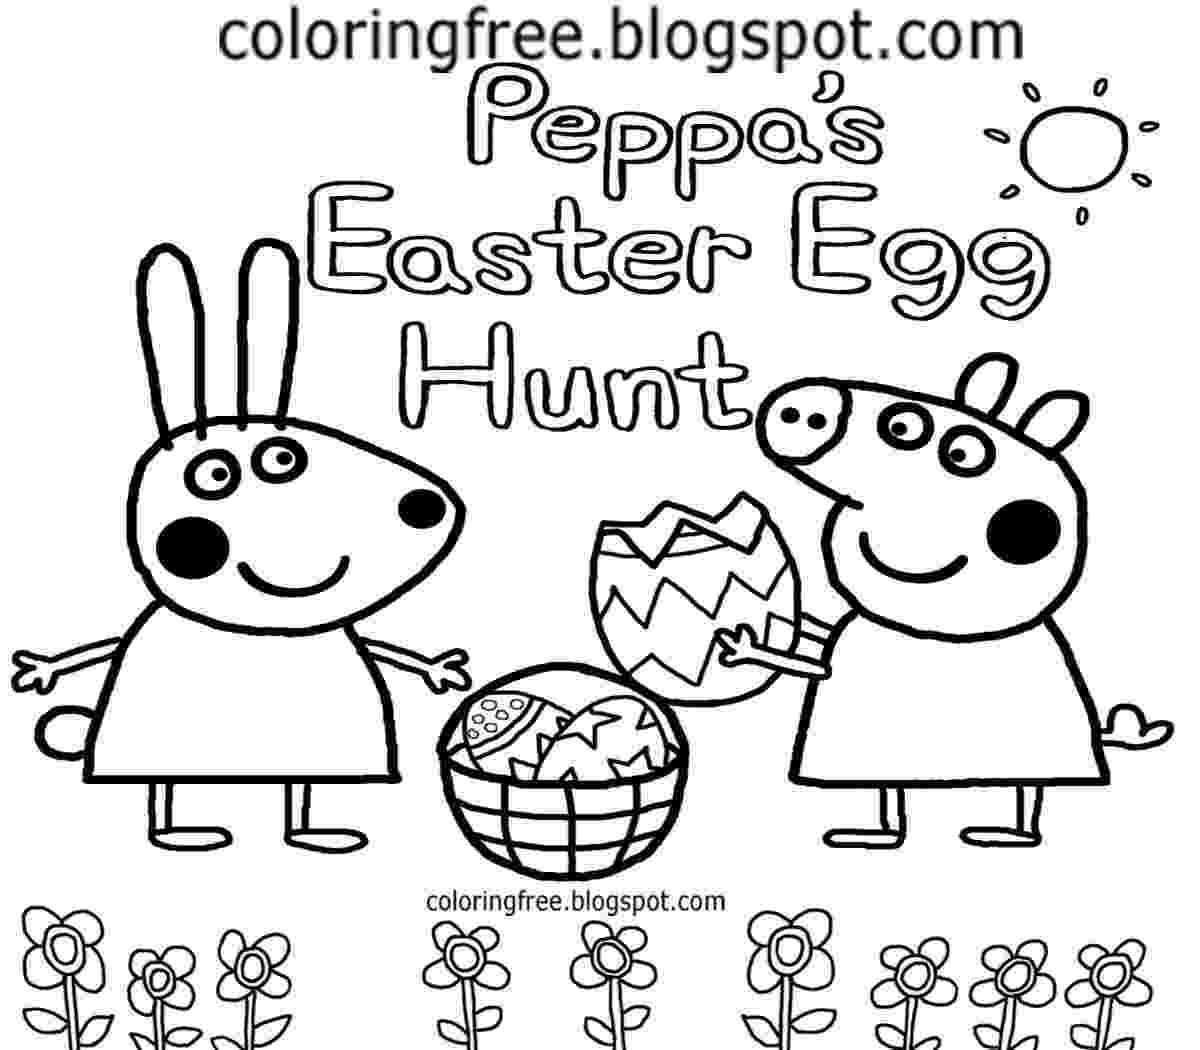 peppa pig coloring peppa pig colouring pages printable pictures and sheets peppa pig coloring 1 1